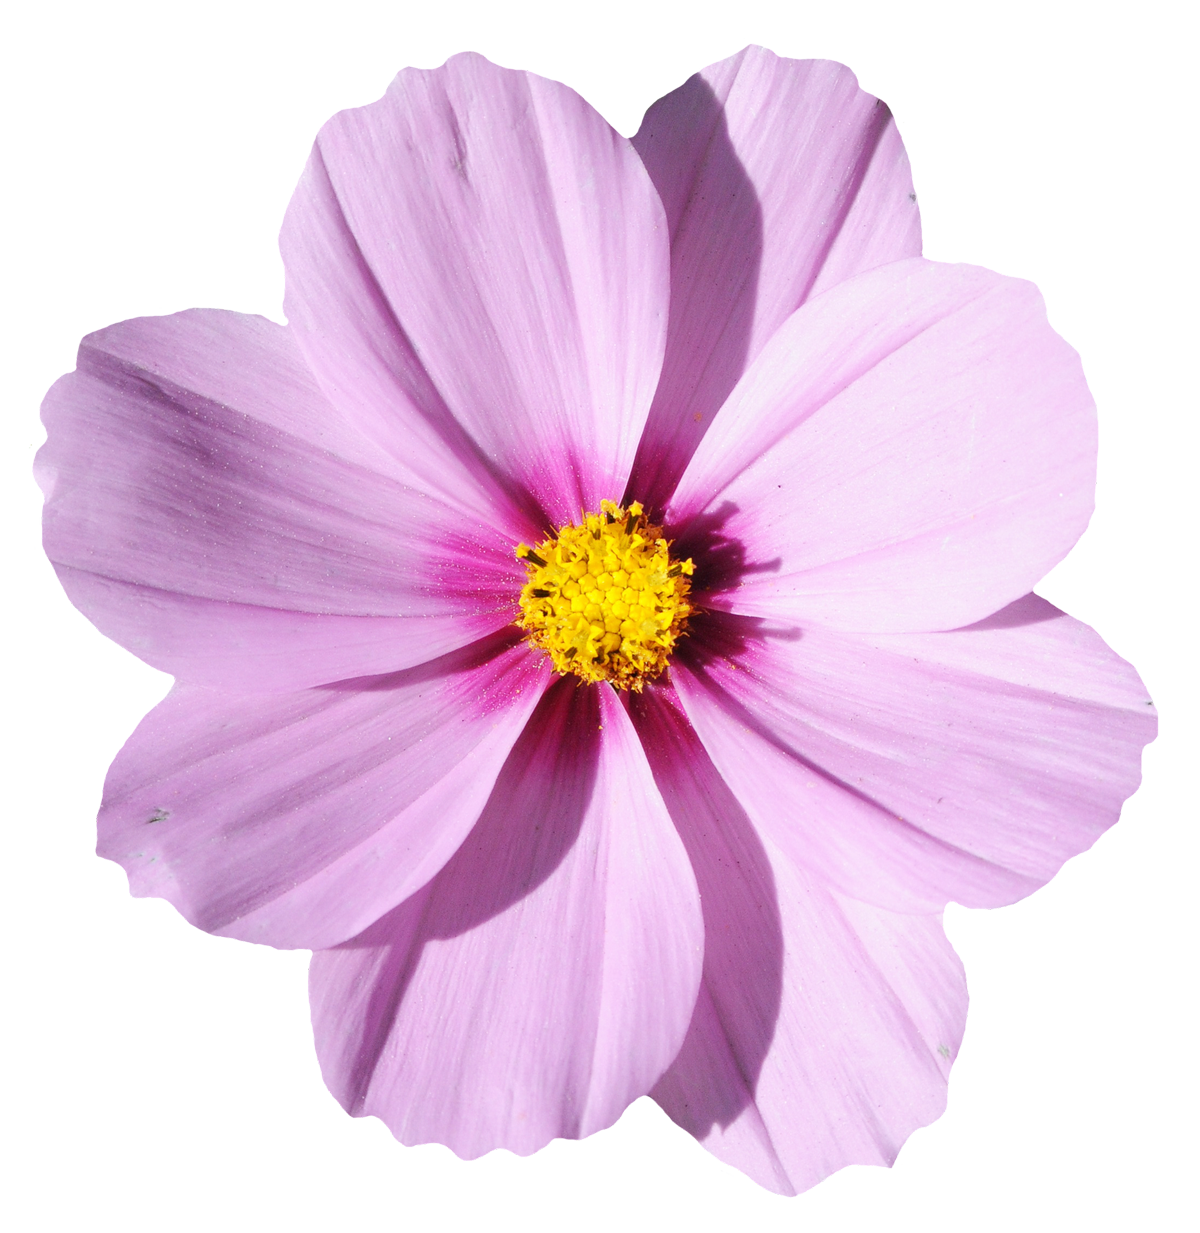 Cosmos flower png. Blossom image purepng free